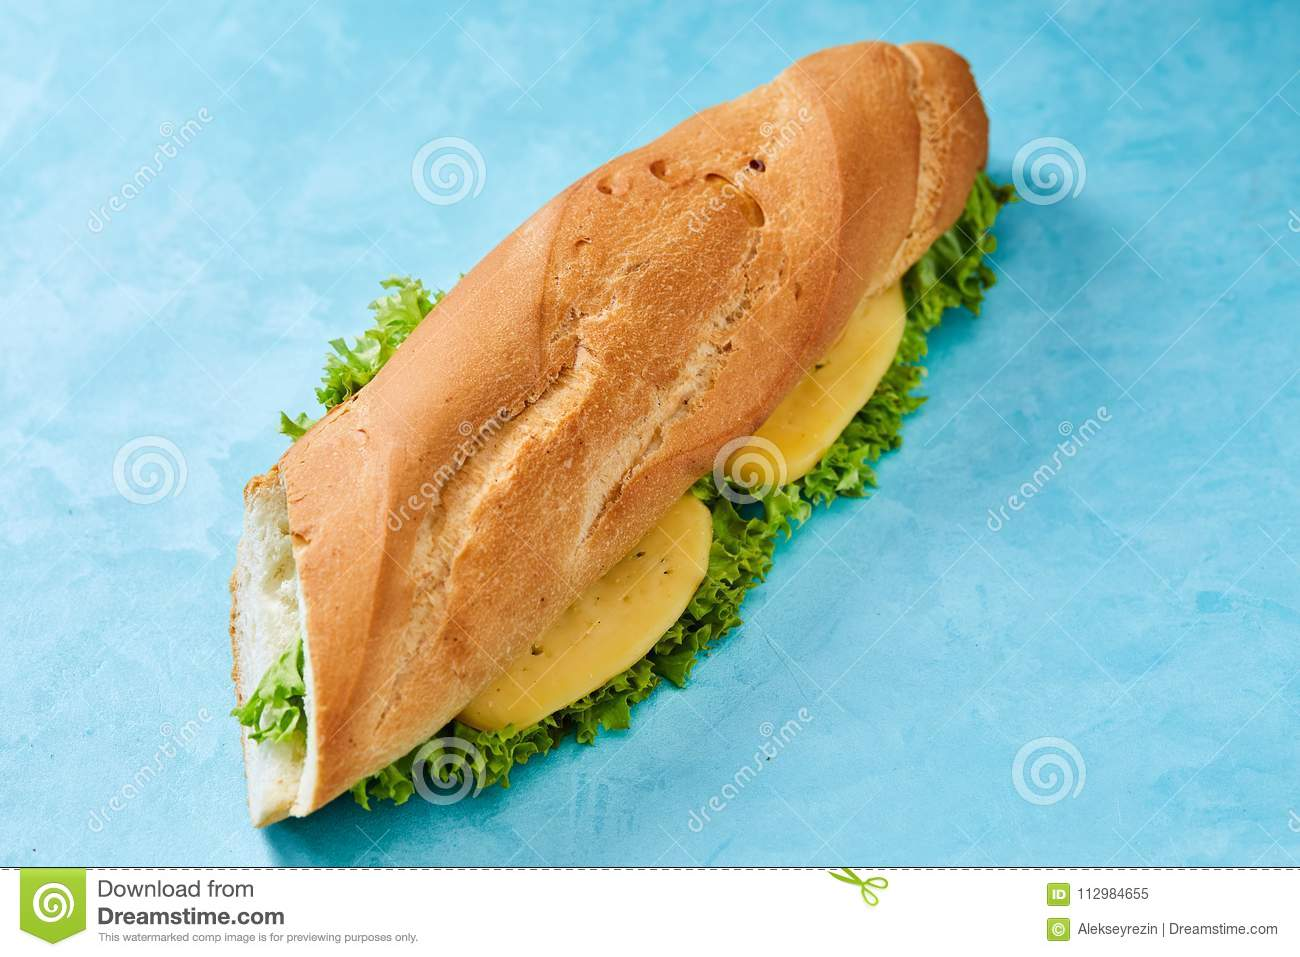 Fresh and tasty sandwich with cheese and vegetables on cutting board over blue background, selective focus.